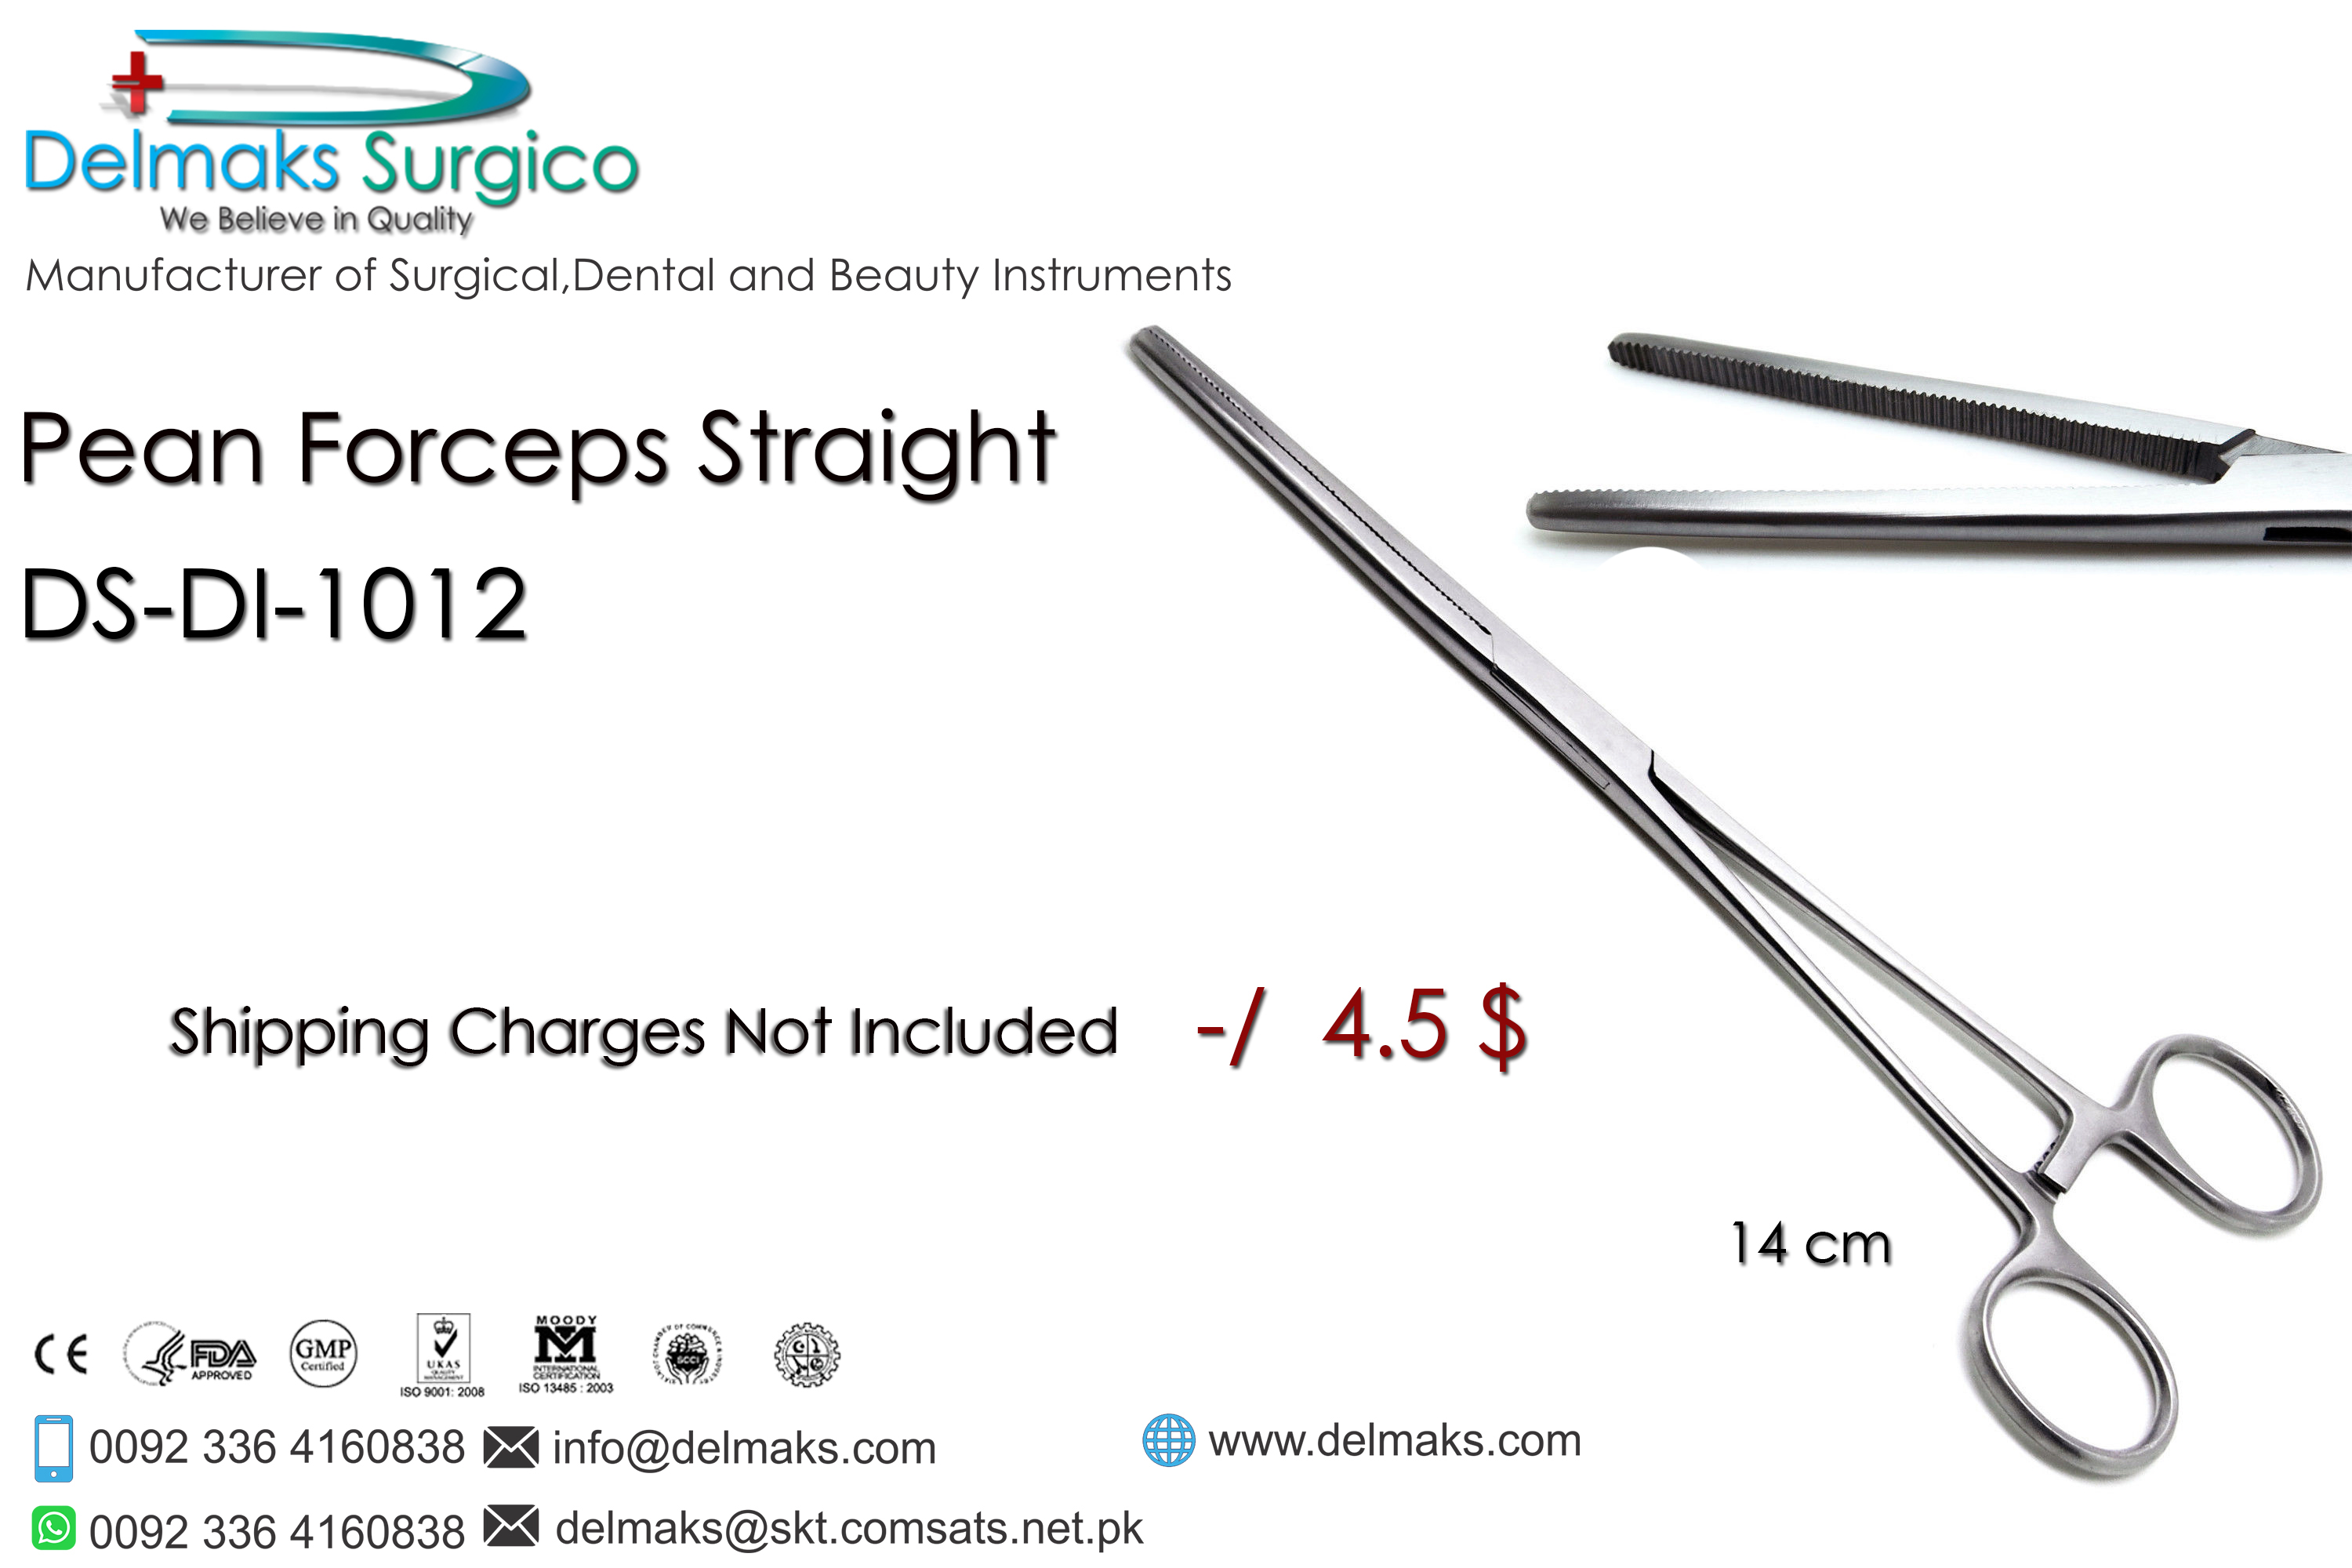 Pean Forceps Straight-Haemostat Forceps-Dental Instruments-Delmaks Surgico